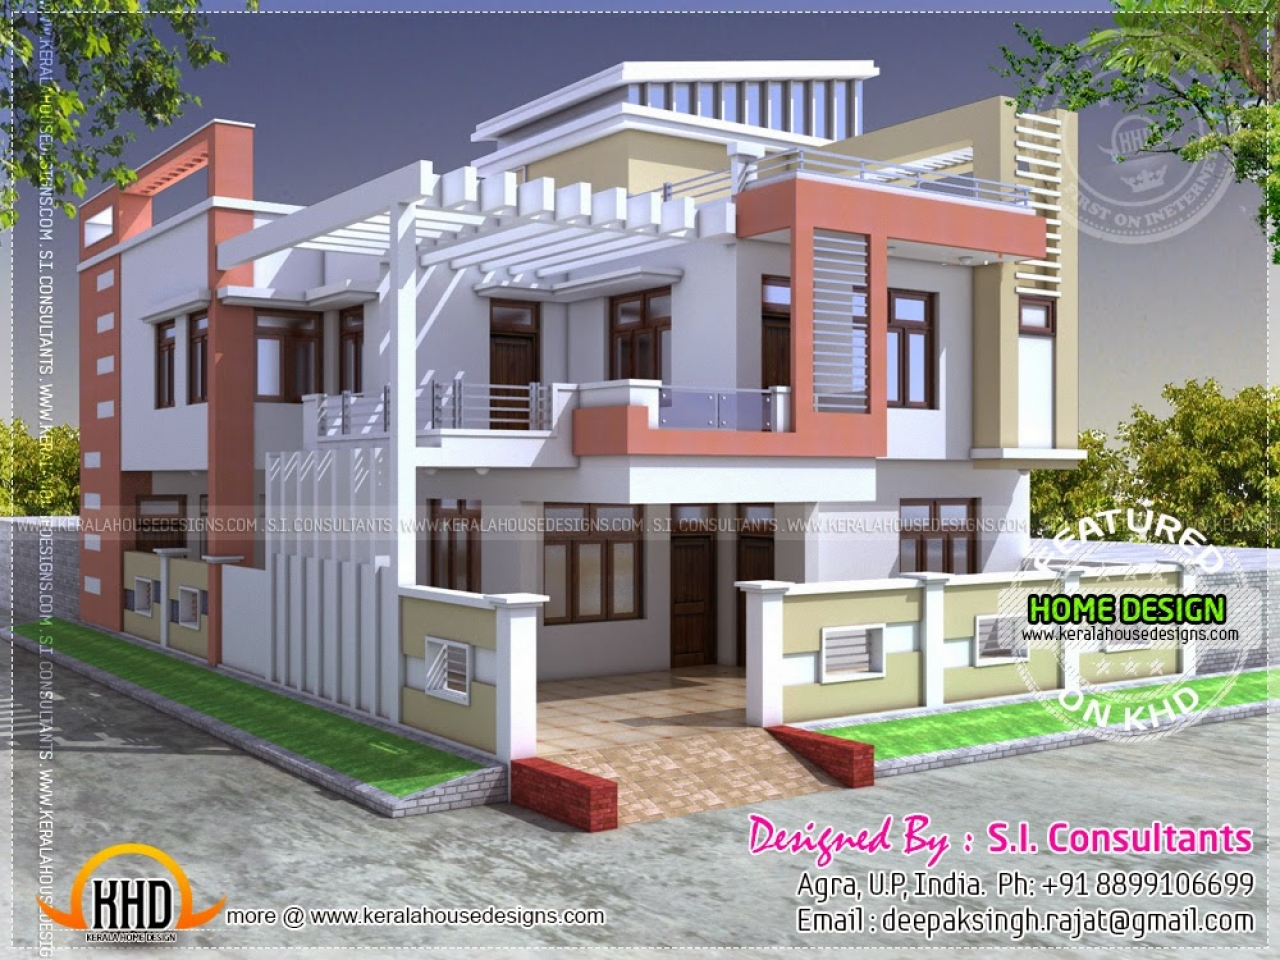 Small Modern House Designs In India: Small Modern House Modern Indian Home Design, Modern House